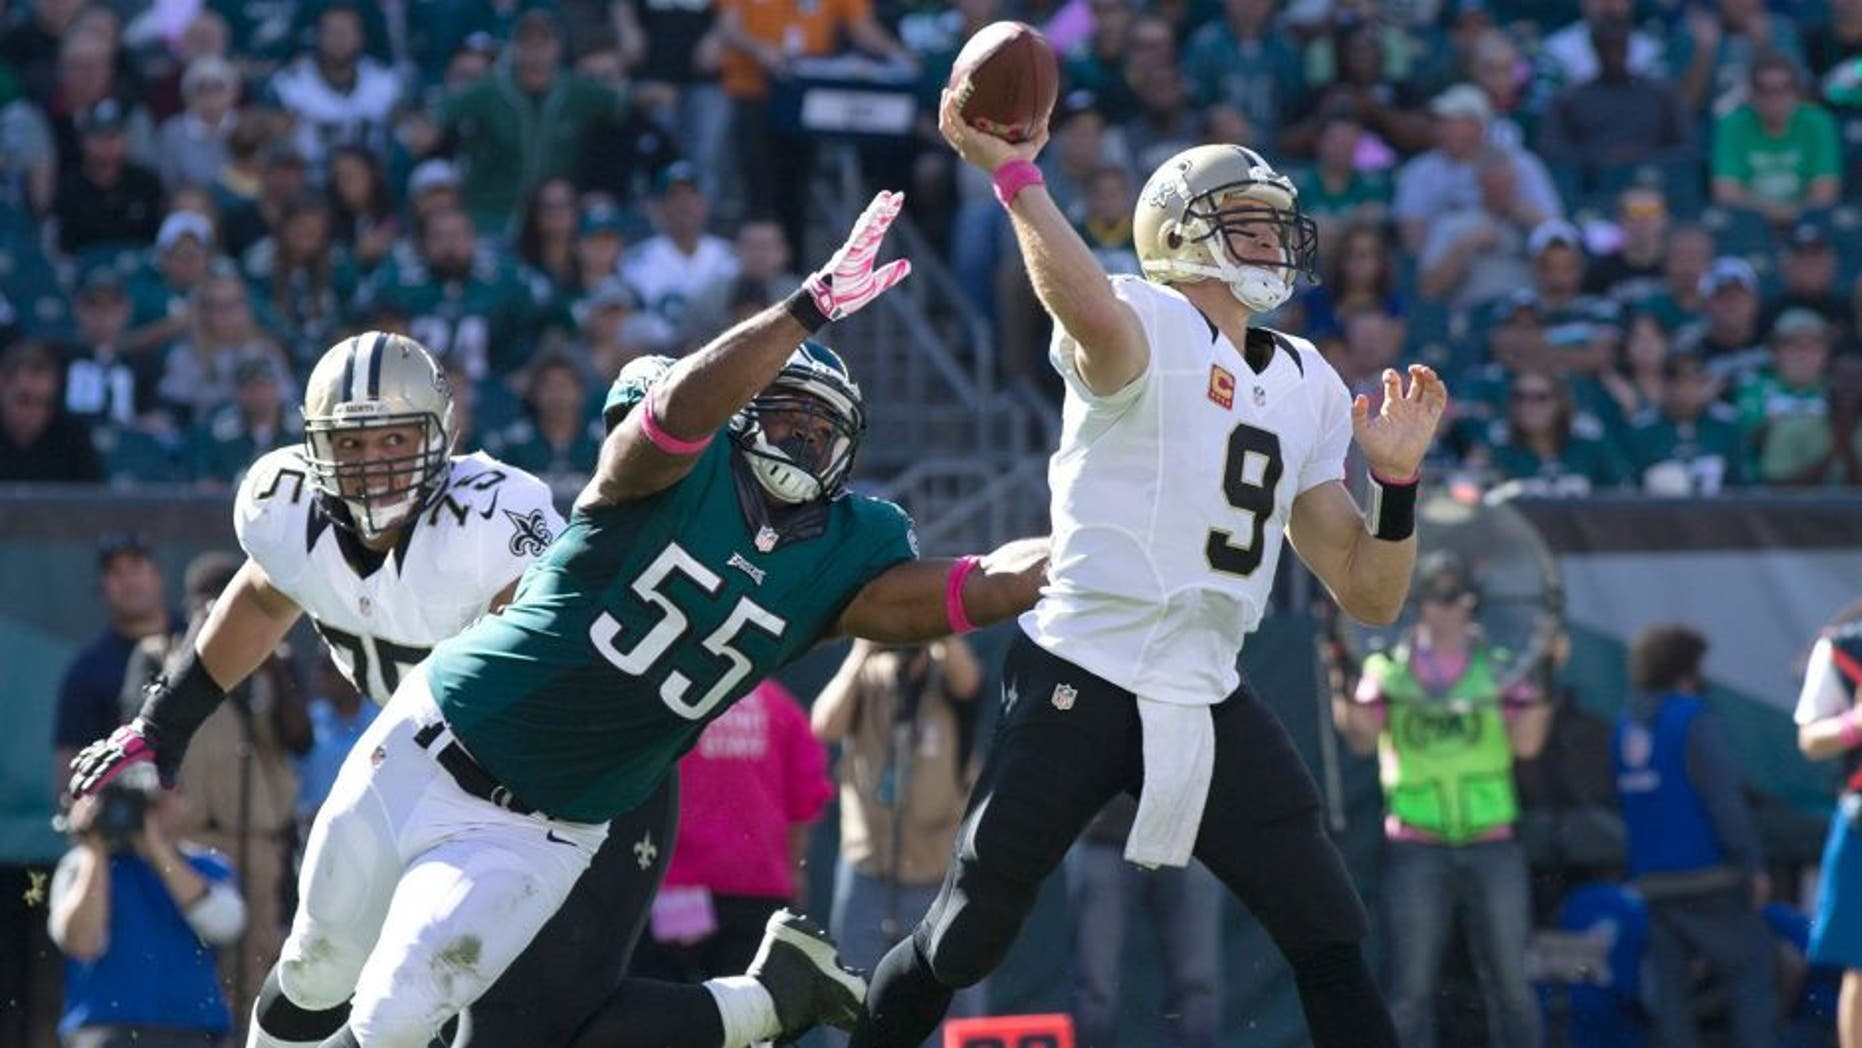 Oct 11, 2015; Philadelphia, PA, USA; New Orleans Saints quarterback Drew Brees (9) passes against the defensive rush of Philadelphia Eagles outside linebacker Brandon Graham (55) during the third quarter at Lincoln Financial Field. Mandatory Credit: Bill Streicher-USA TODAY Sports